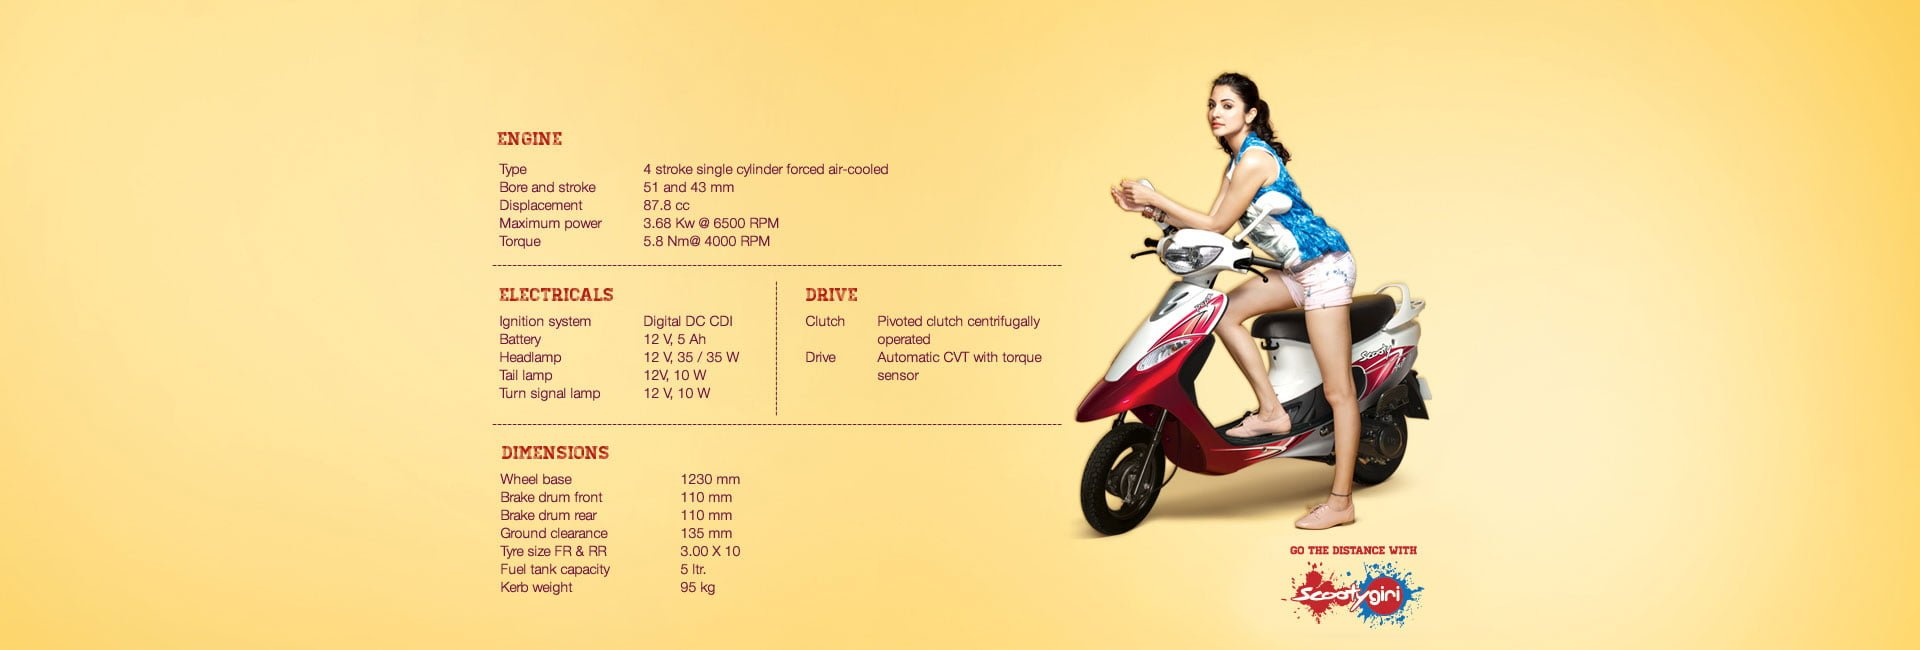 New Tvs Scooty Pep Plus 2016 Specifications Price Mileage